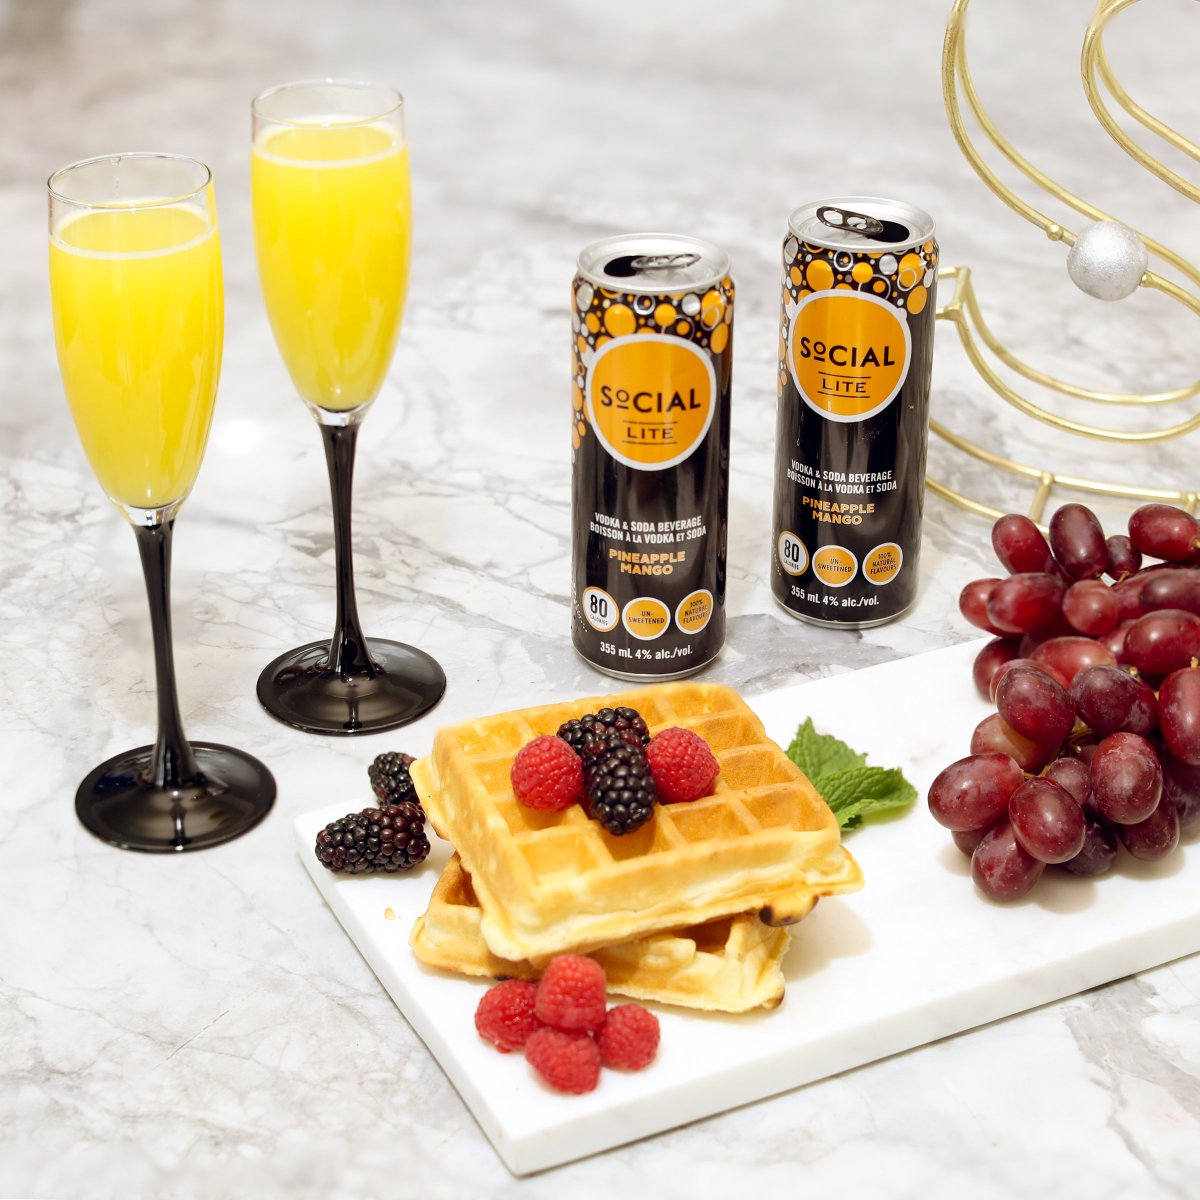 Treat your mom right with SoCIAL LITE mimosas 💕 https://t.co/aQ1RBTGVb0